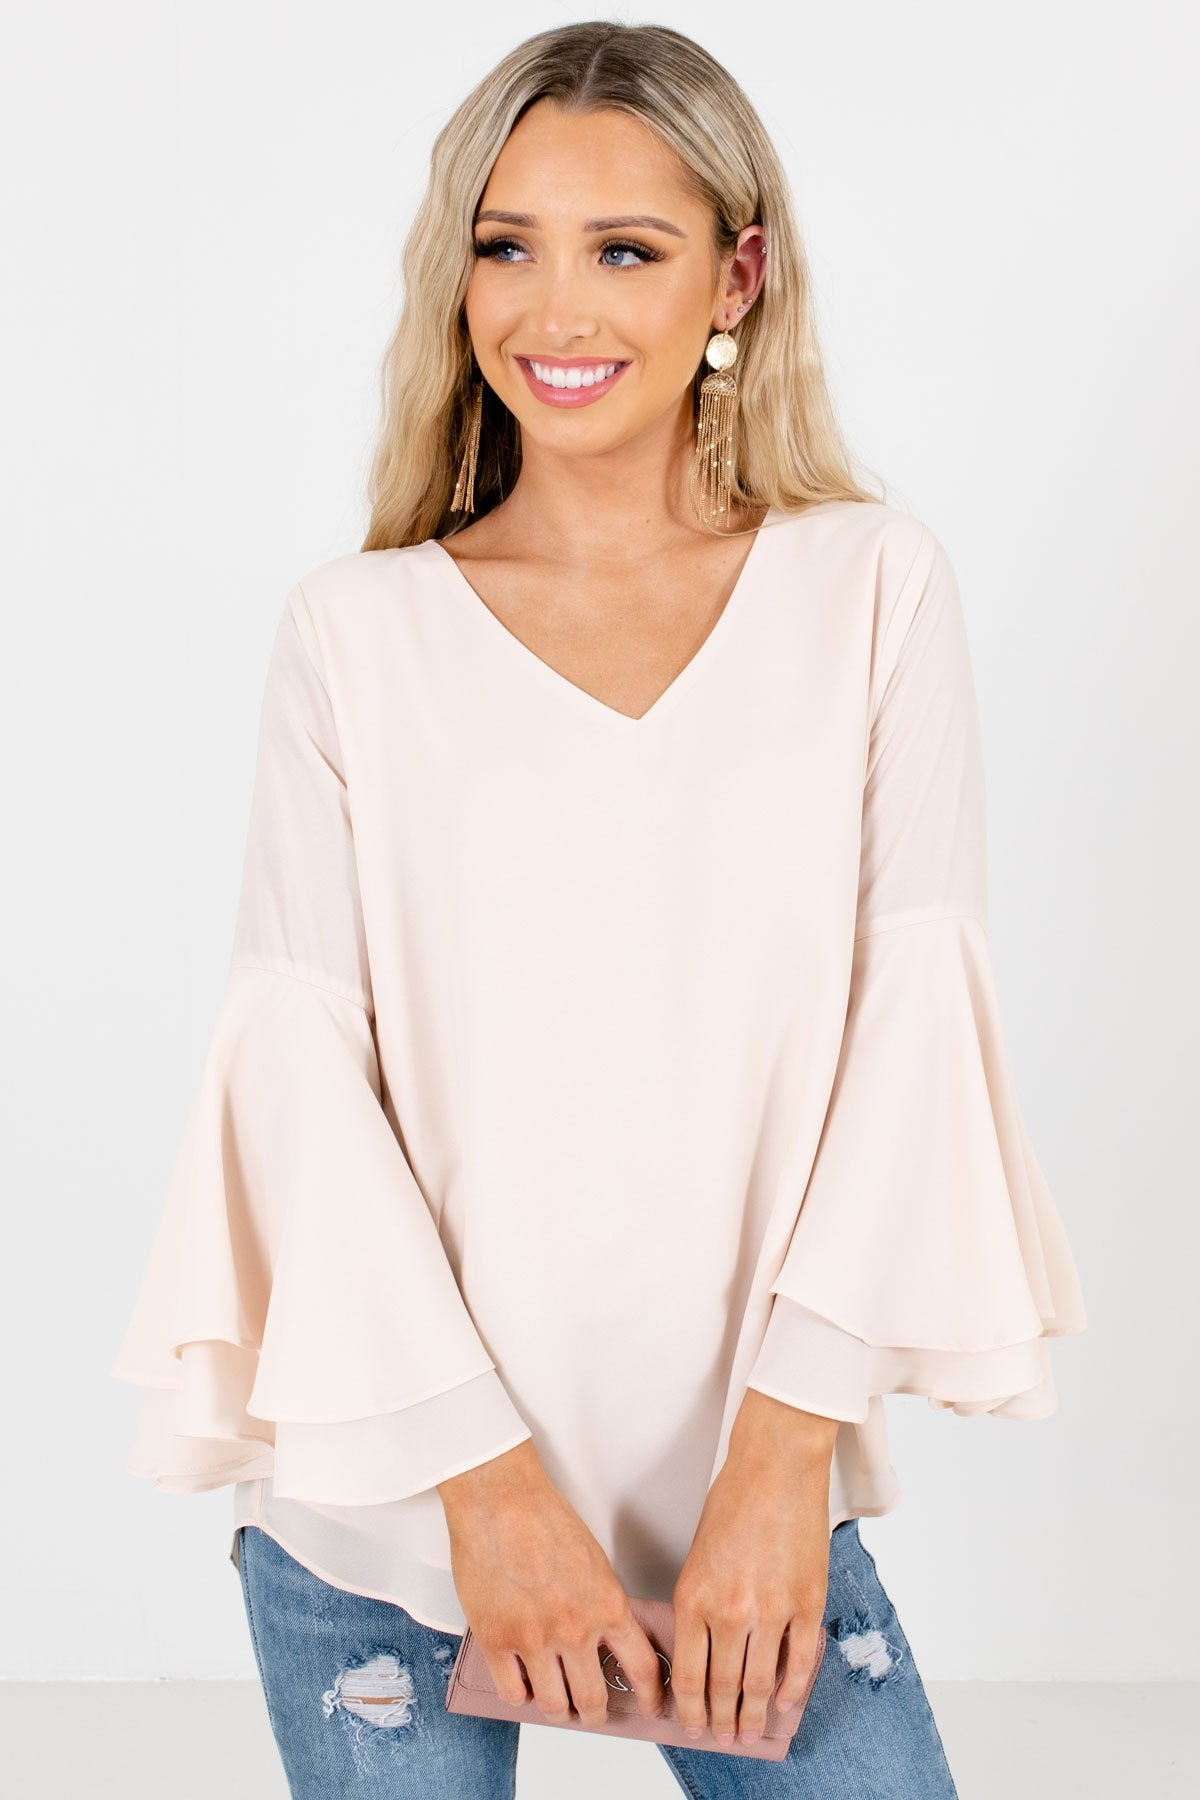 Cream High-Quality Lightweight Material Boutique Blouses for Women